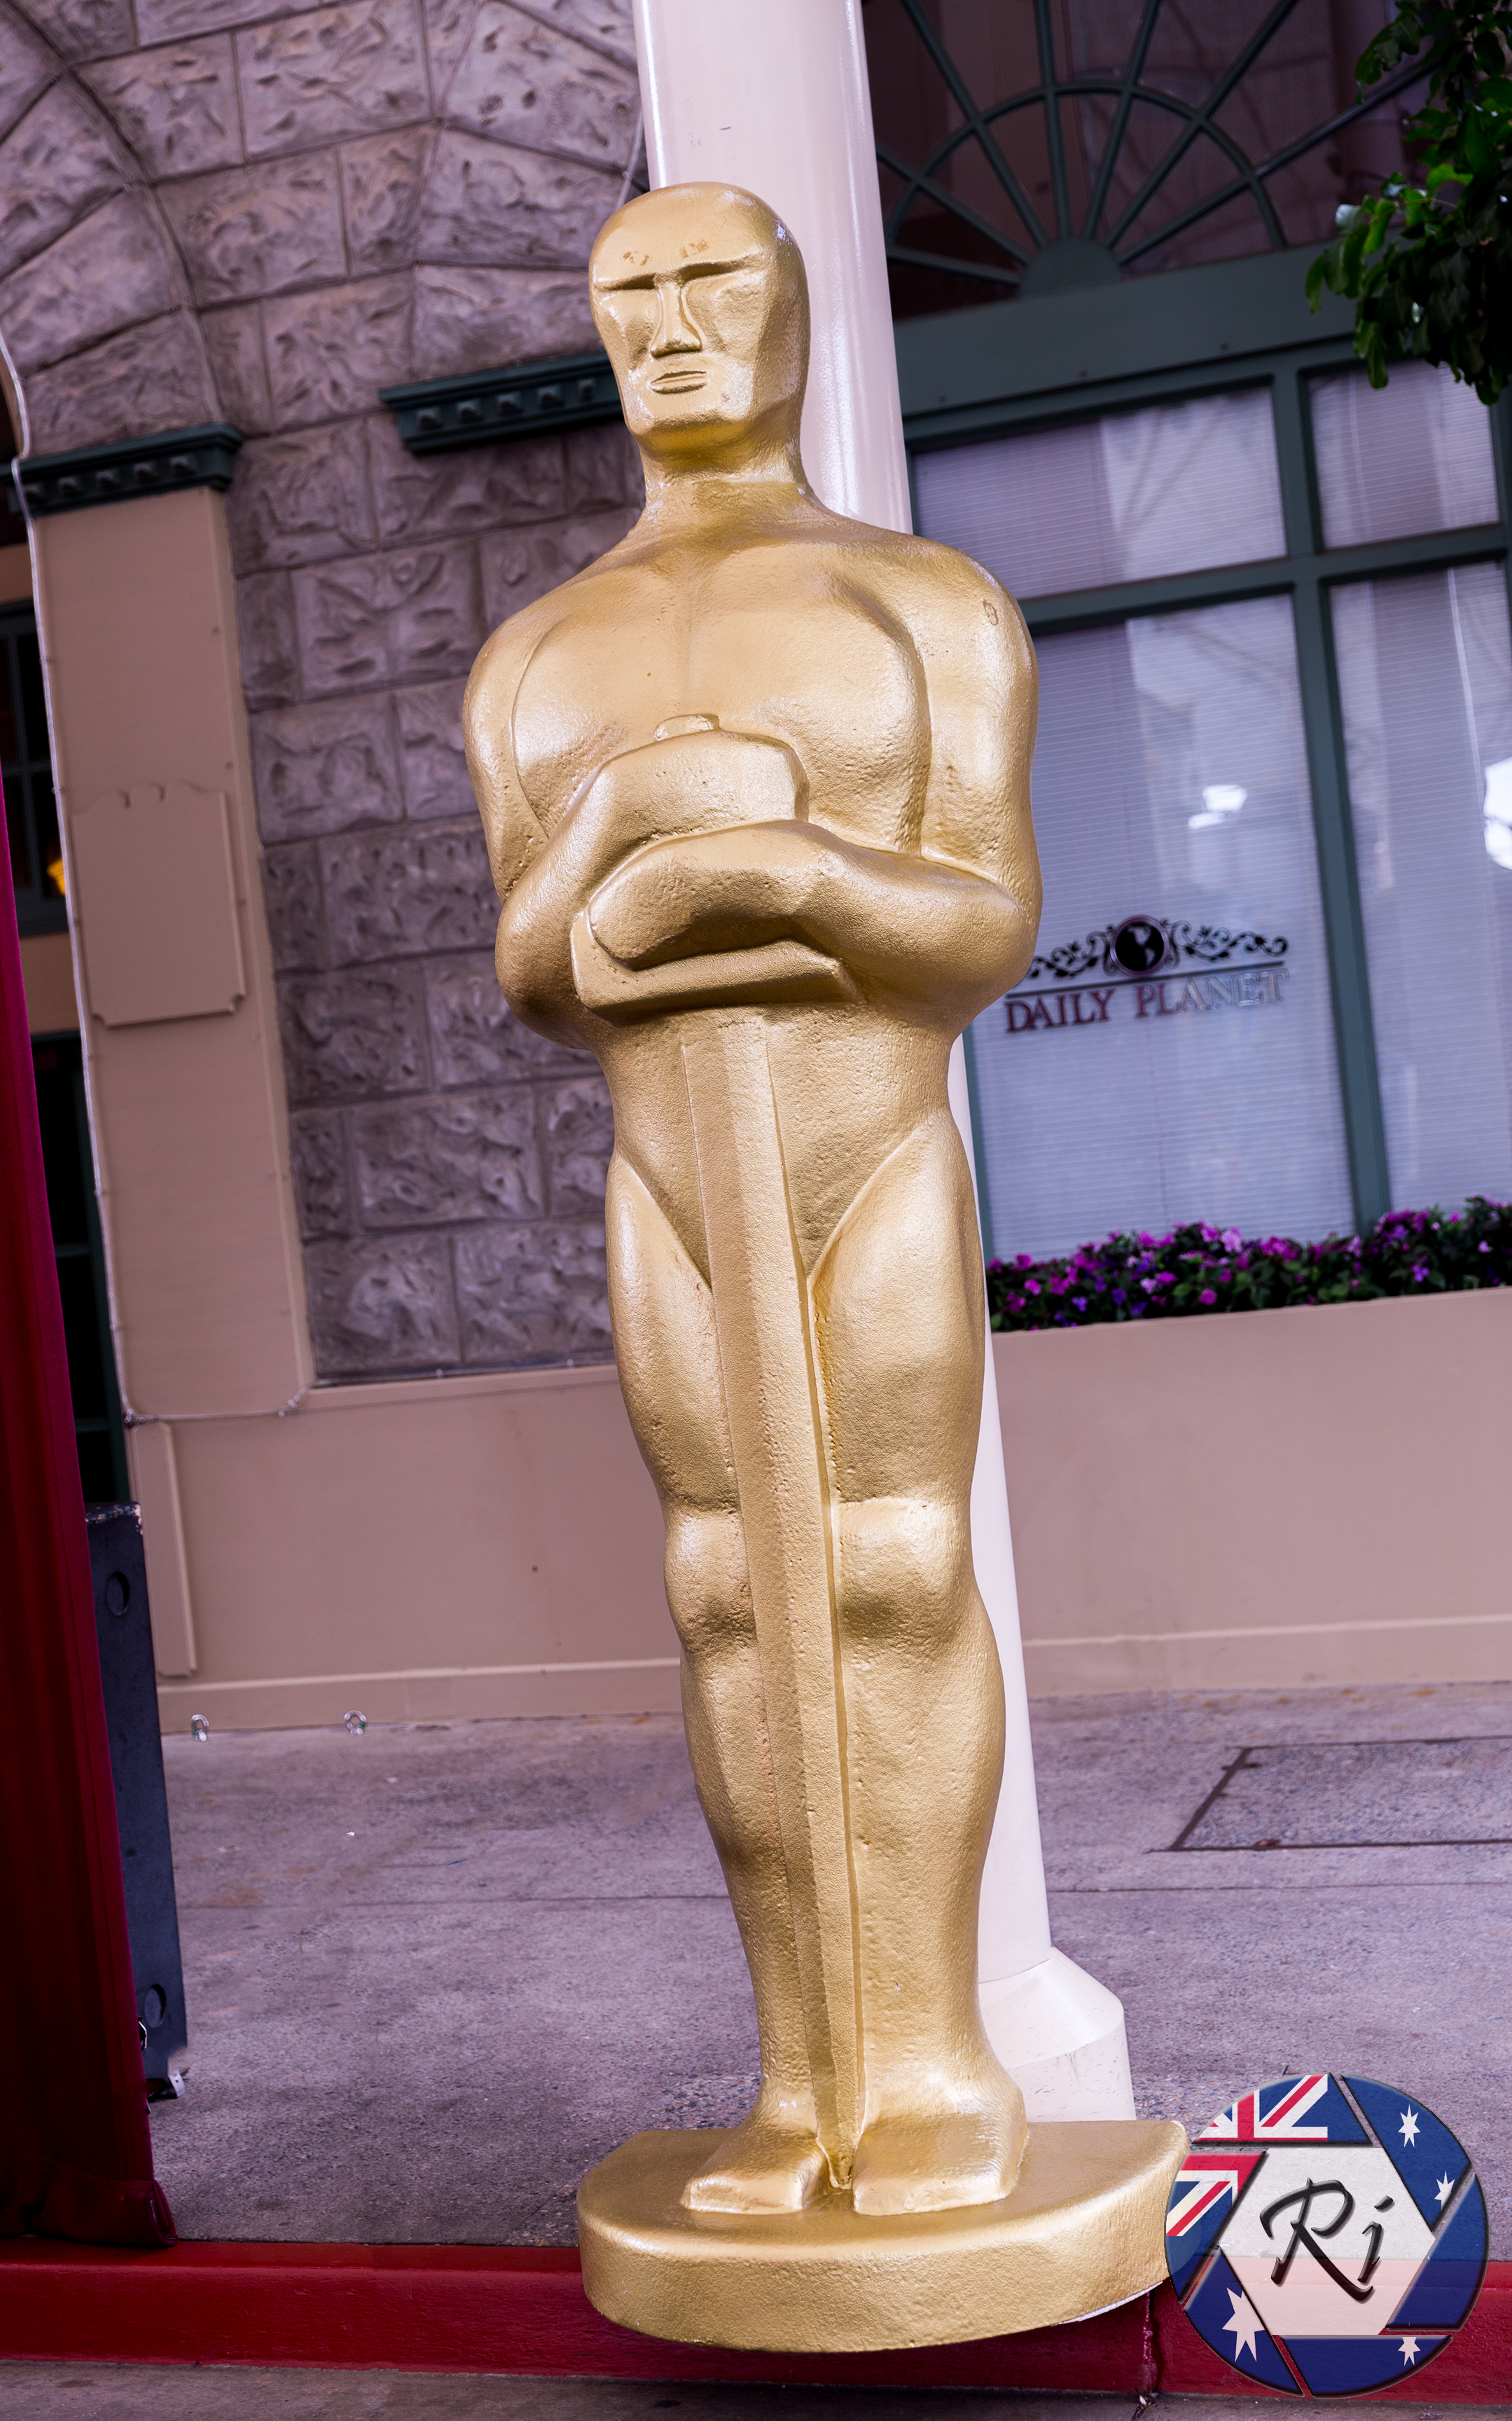 The Oscars Statue